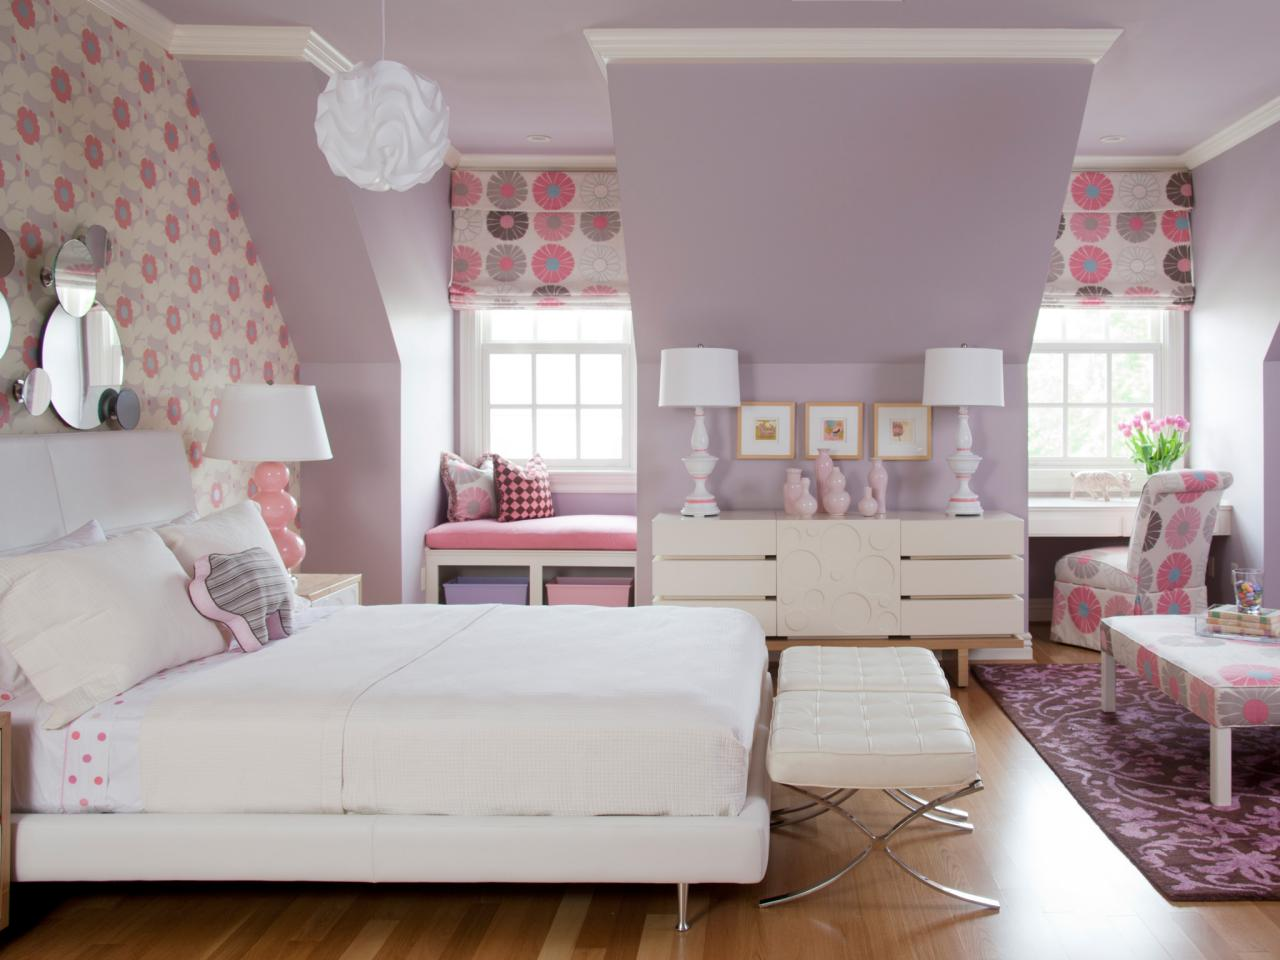 Paint colors for bedrooms pink - Coral And Kelly Green Bedroom